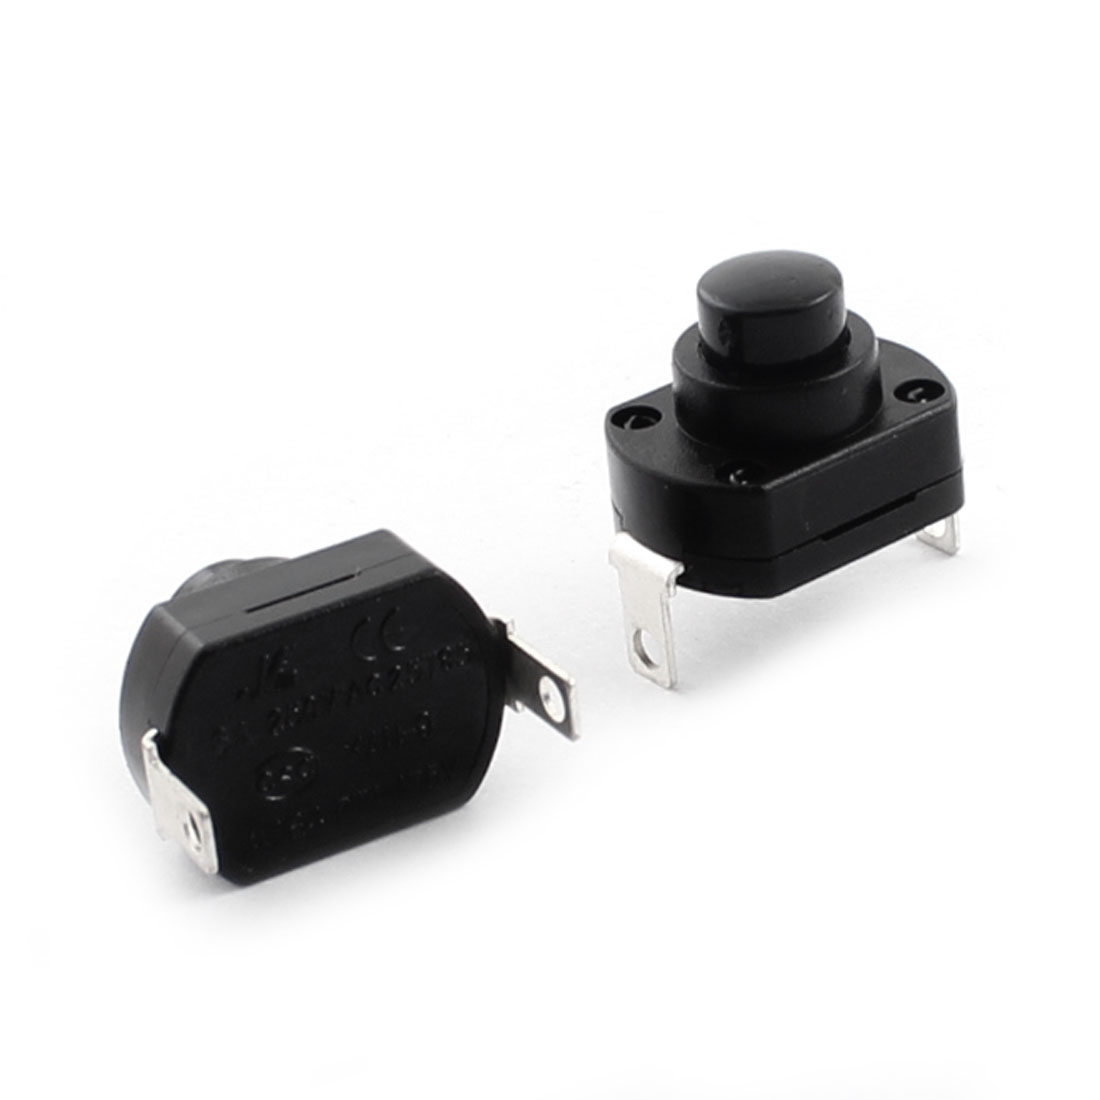 2 Pcs AC 250V 6A SPST Self-locking Flashlight Torch Push Button Switch Black 17mm x 13mm